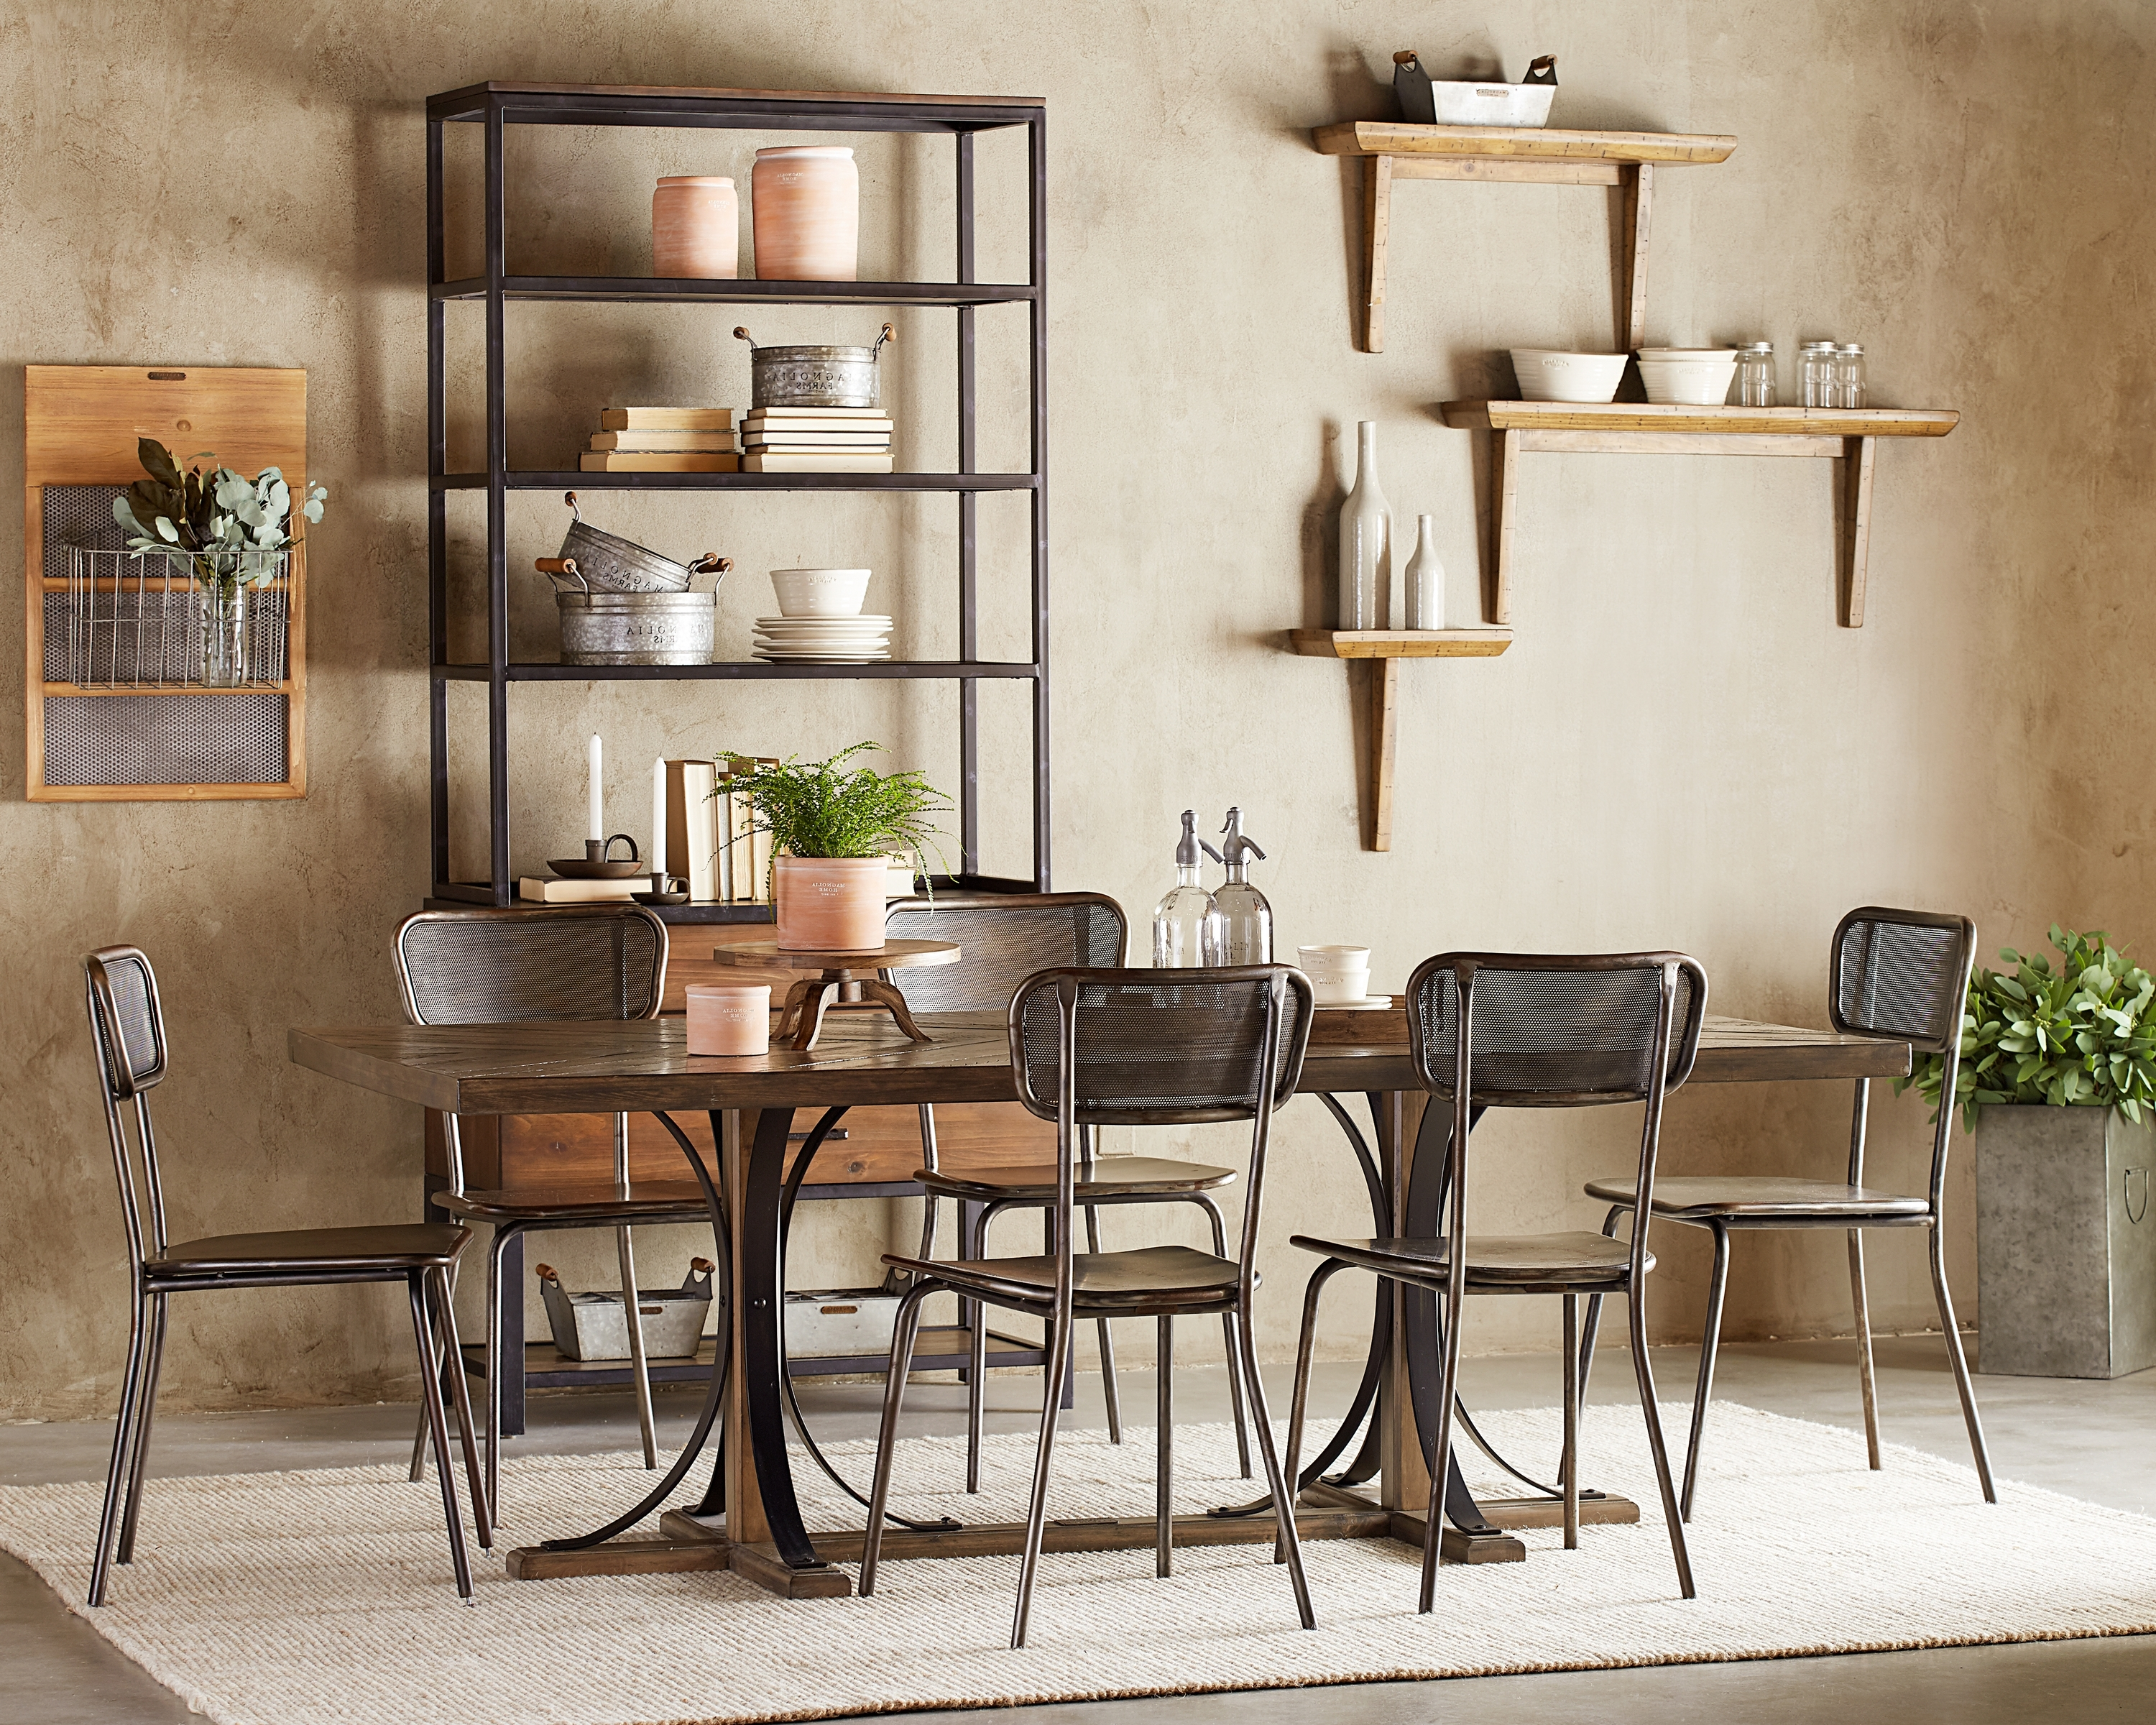 Magnolia Home Sawbuck Dining Tables Throughout Current Iron Trestle Dining Table – Magnolia Home (View 14 of 25)